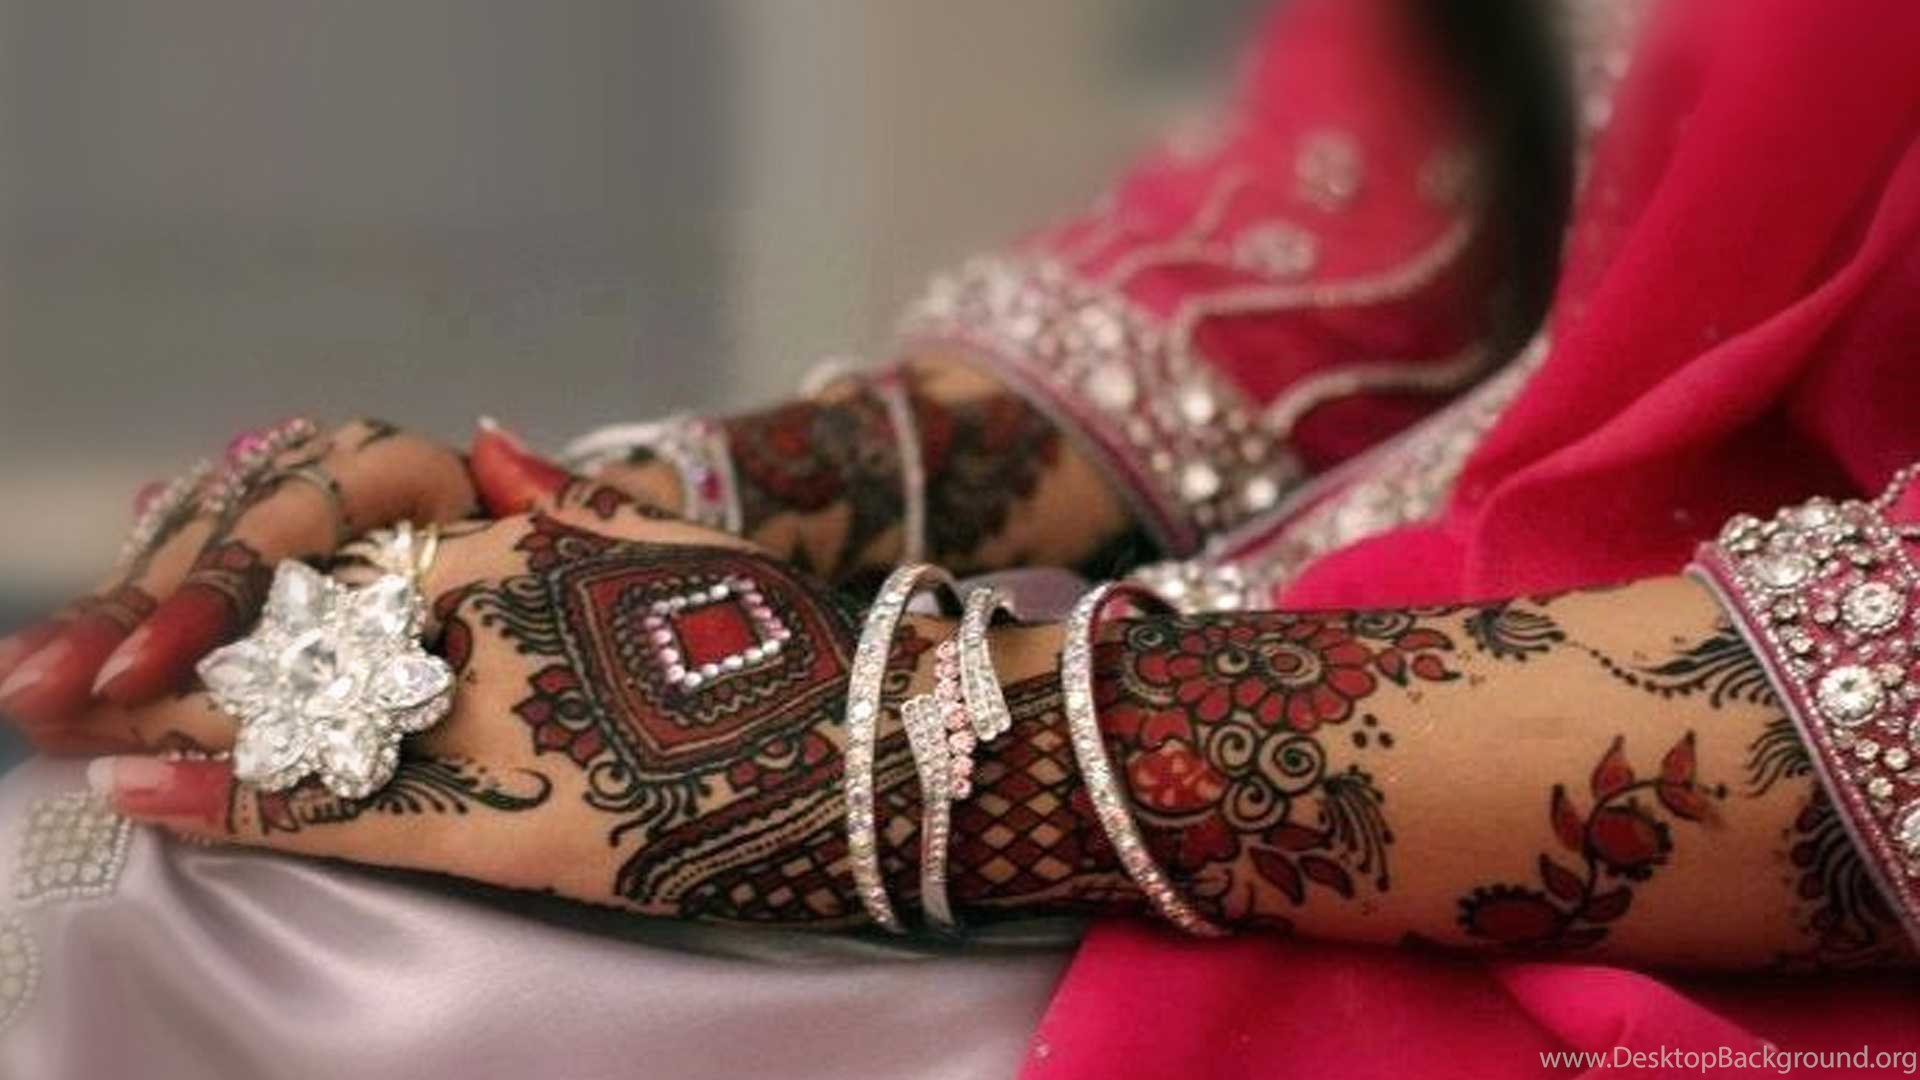 mehndi design wallpapers & latest mehndi designs images desktop